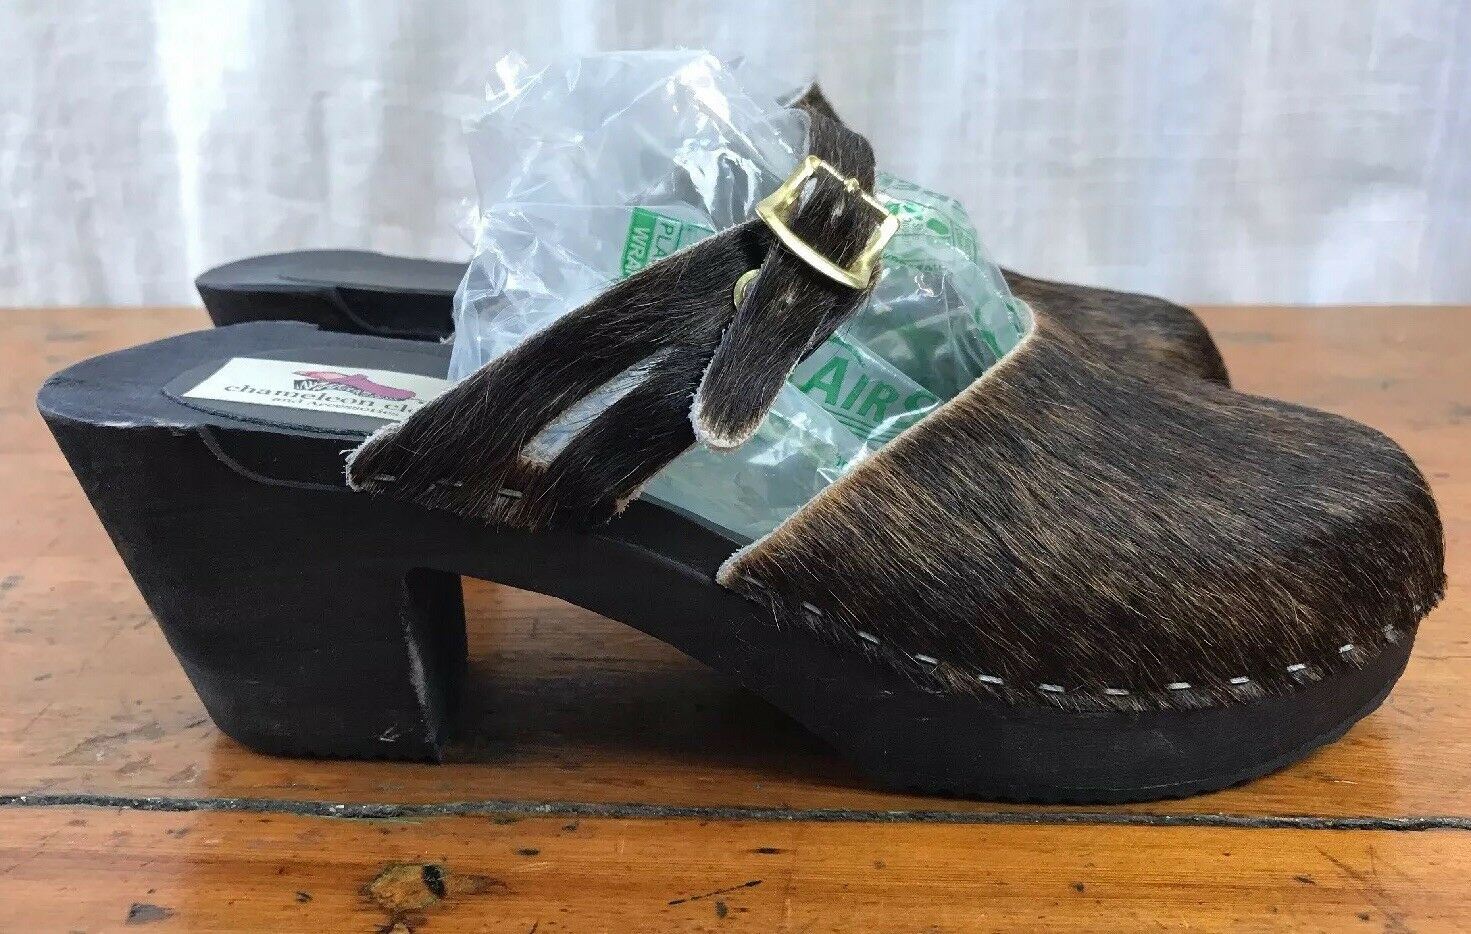 Chameleon Clogs Brown Calf Hair Heeled Heeled Heeled Clog Strap Sandals EU41 US 9.5-10, USA 78a219